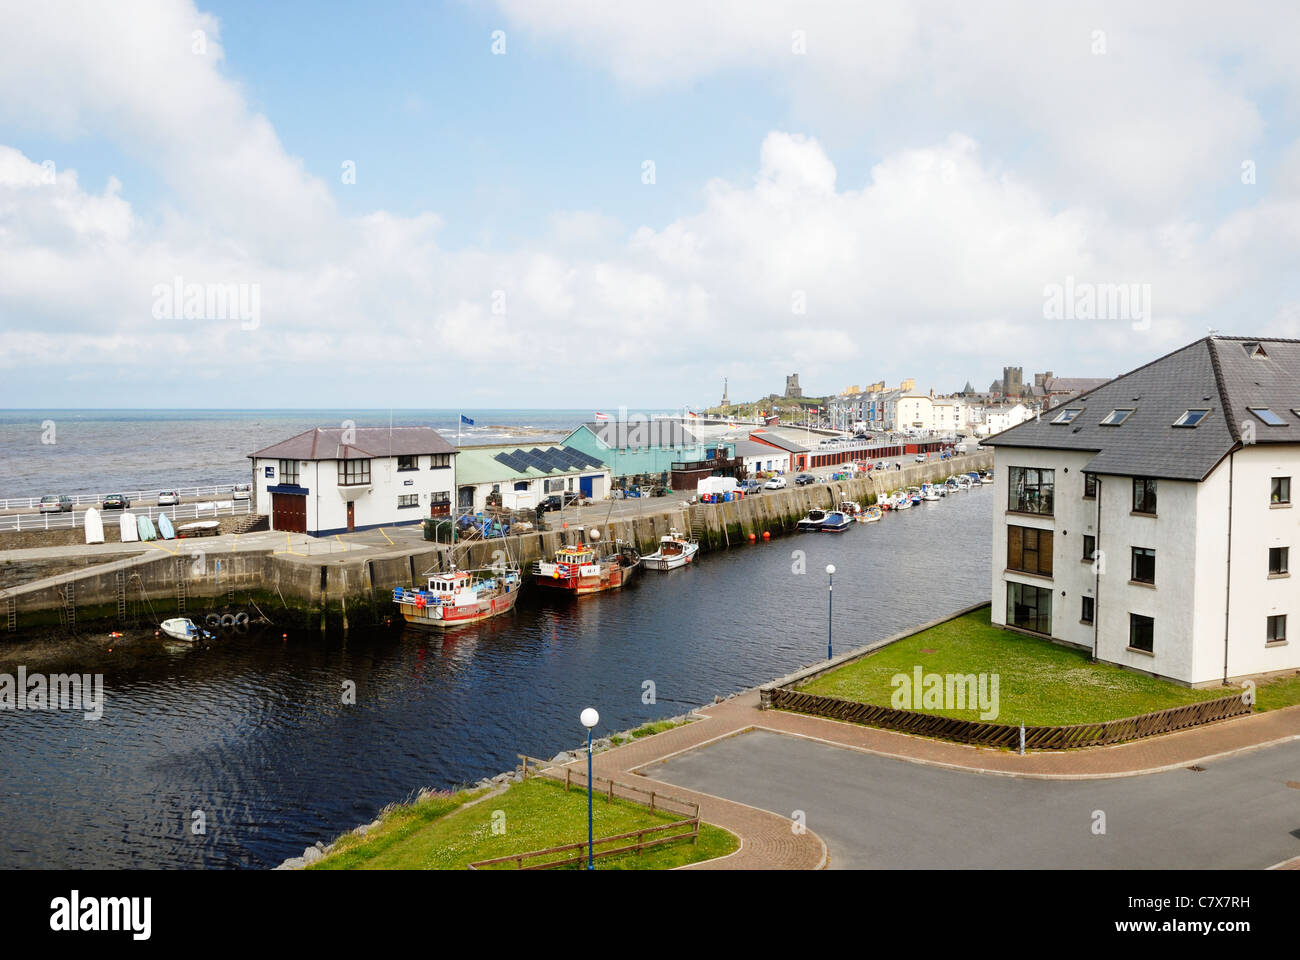 Residential housing development overlooking Cardigan Bay and Aberystwyth harbour, Wales - Stock Image